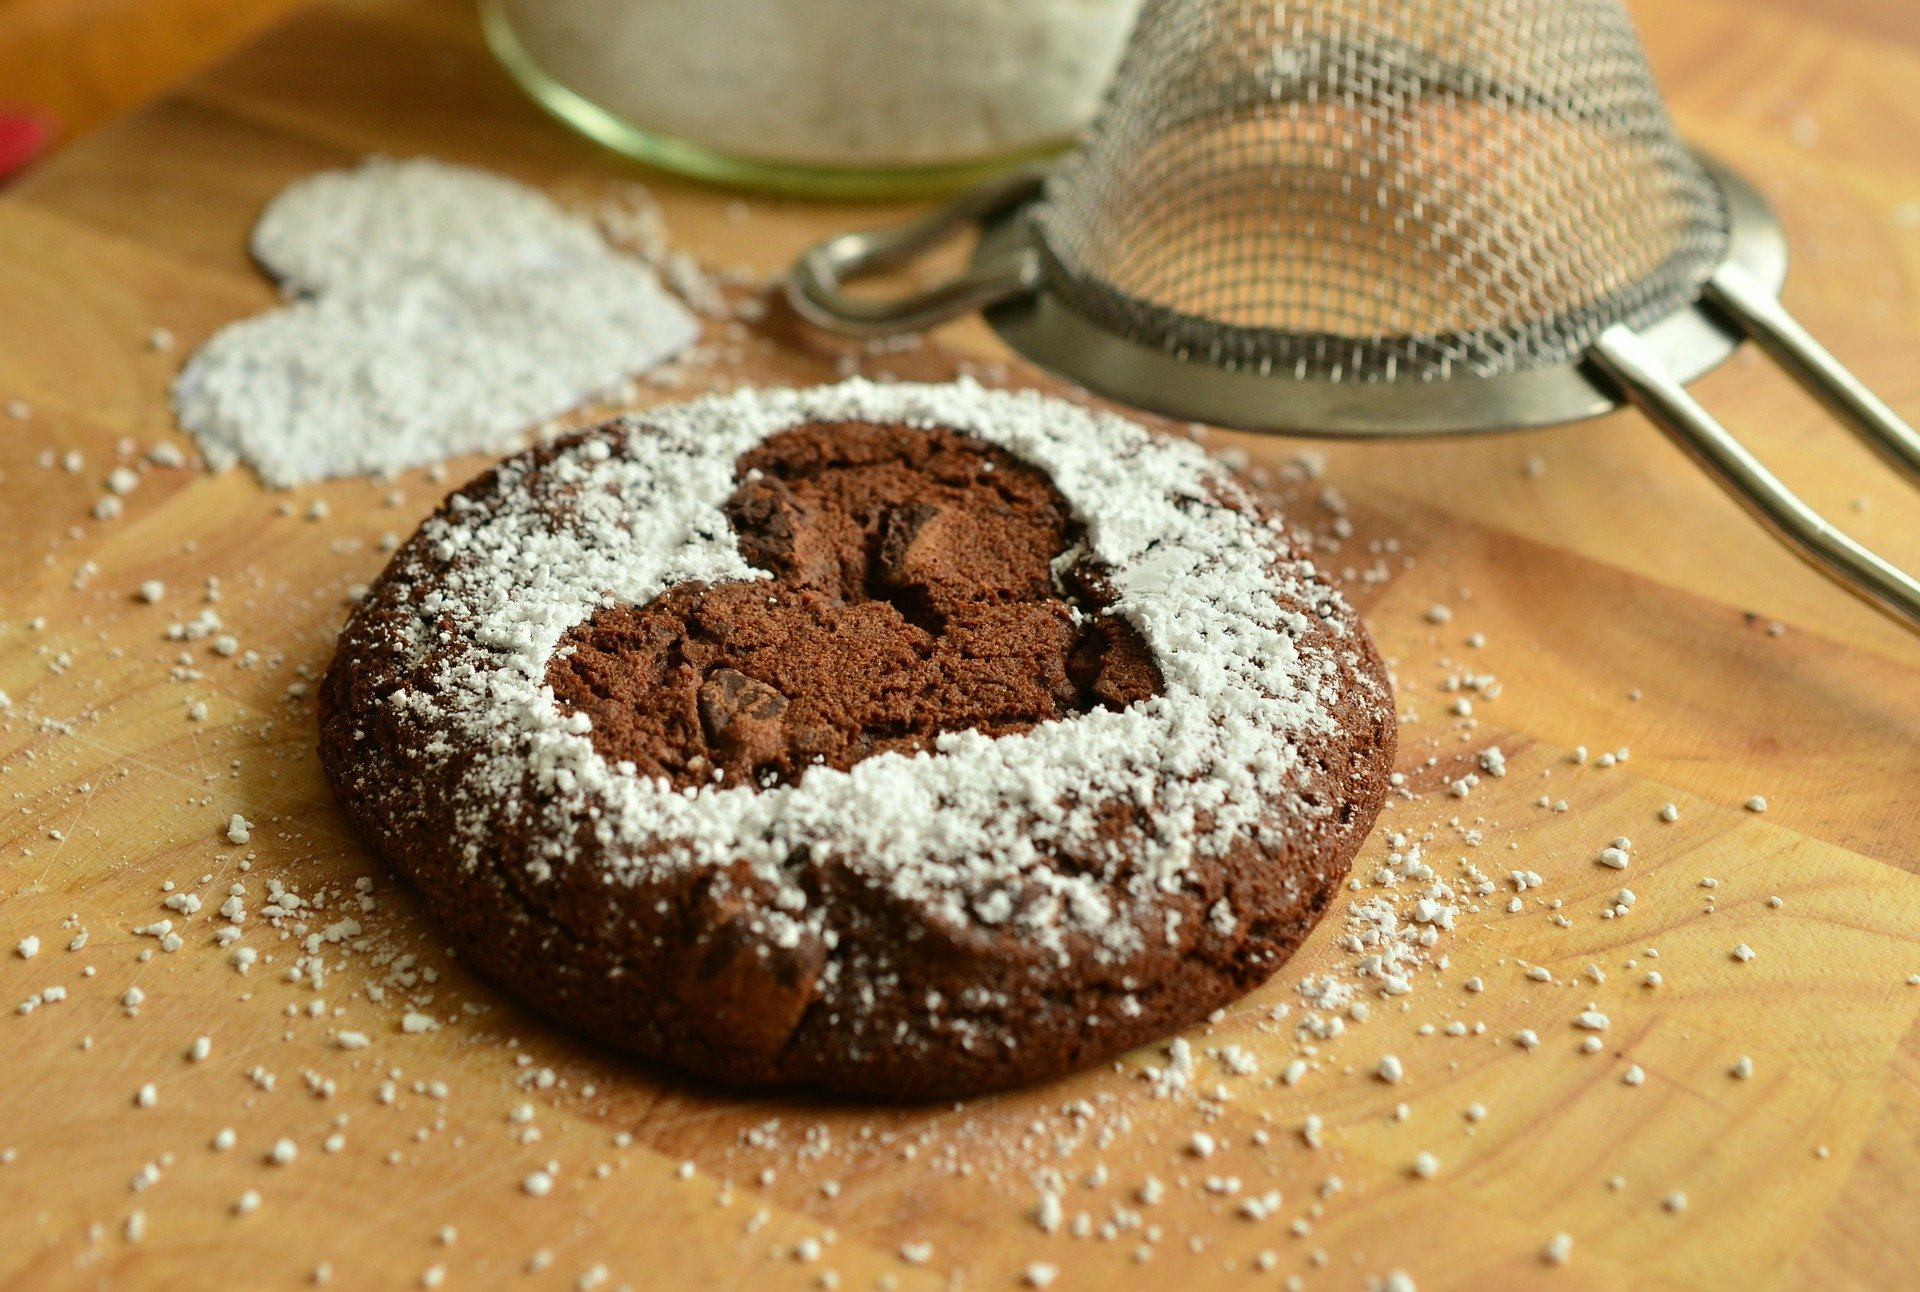 Chocolate Cookie With White Sugar Powder With The Shape Of A Heart